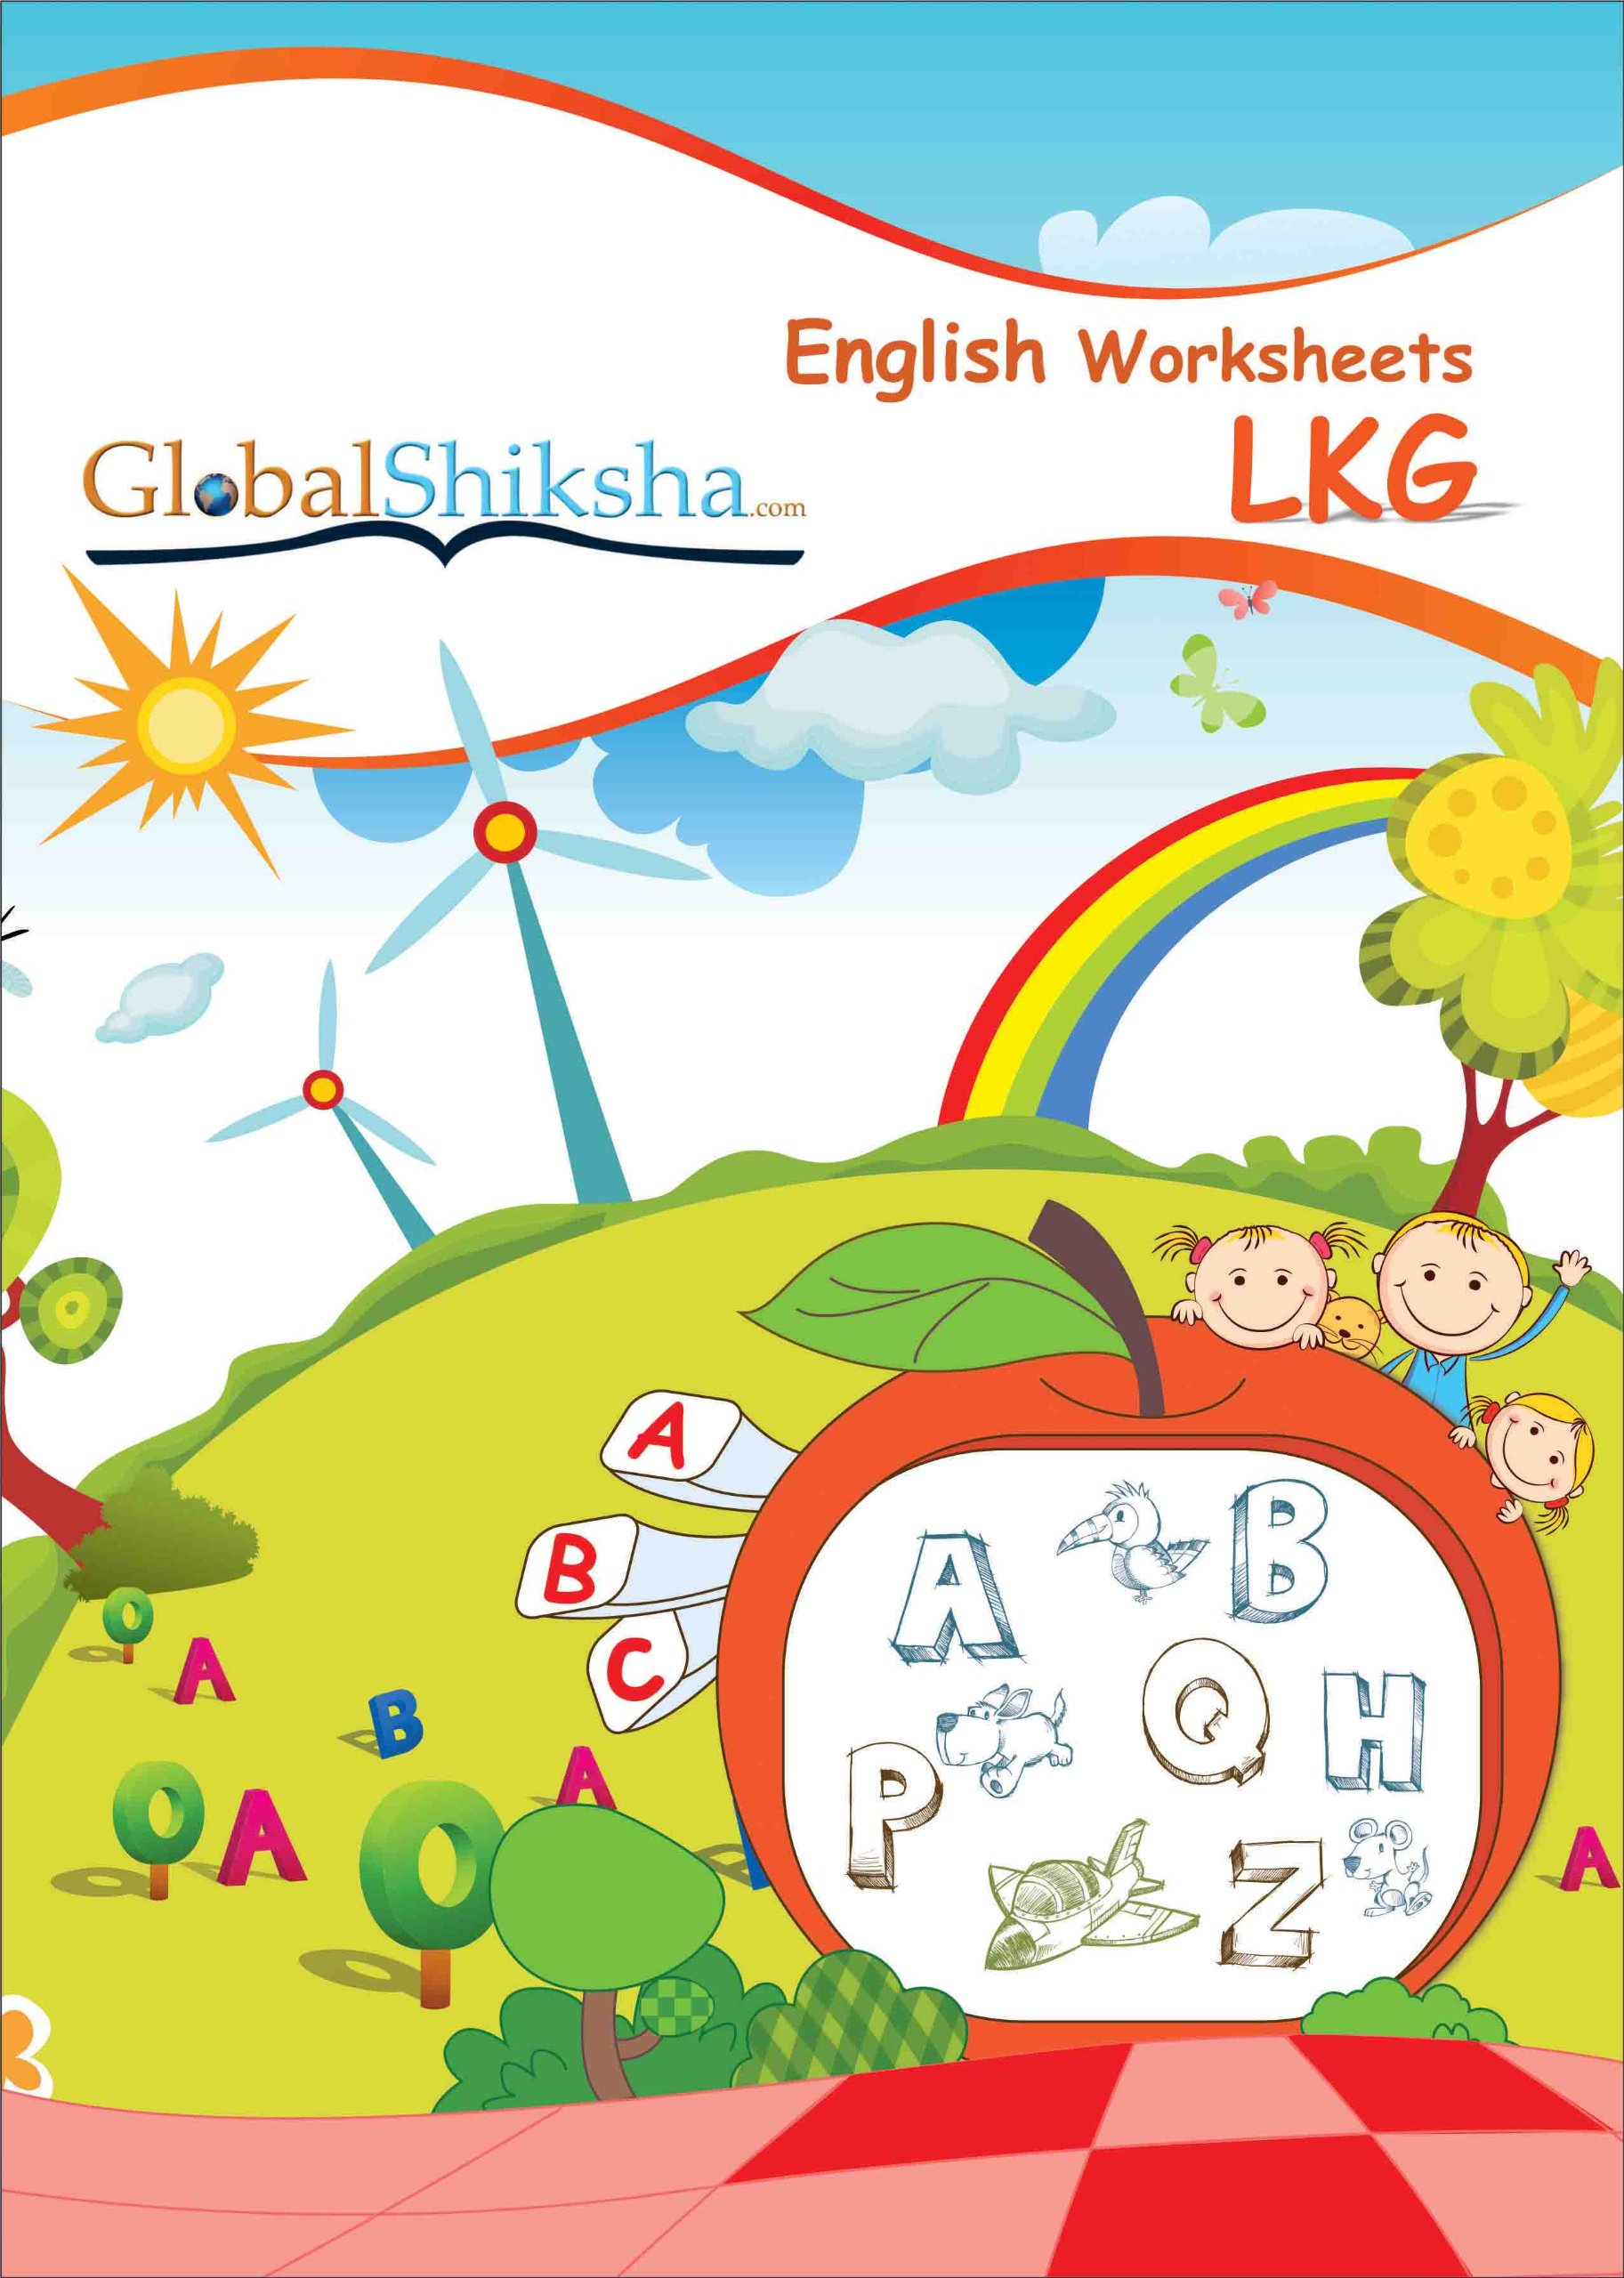 Lkg Worksheets English Free